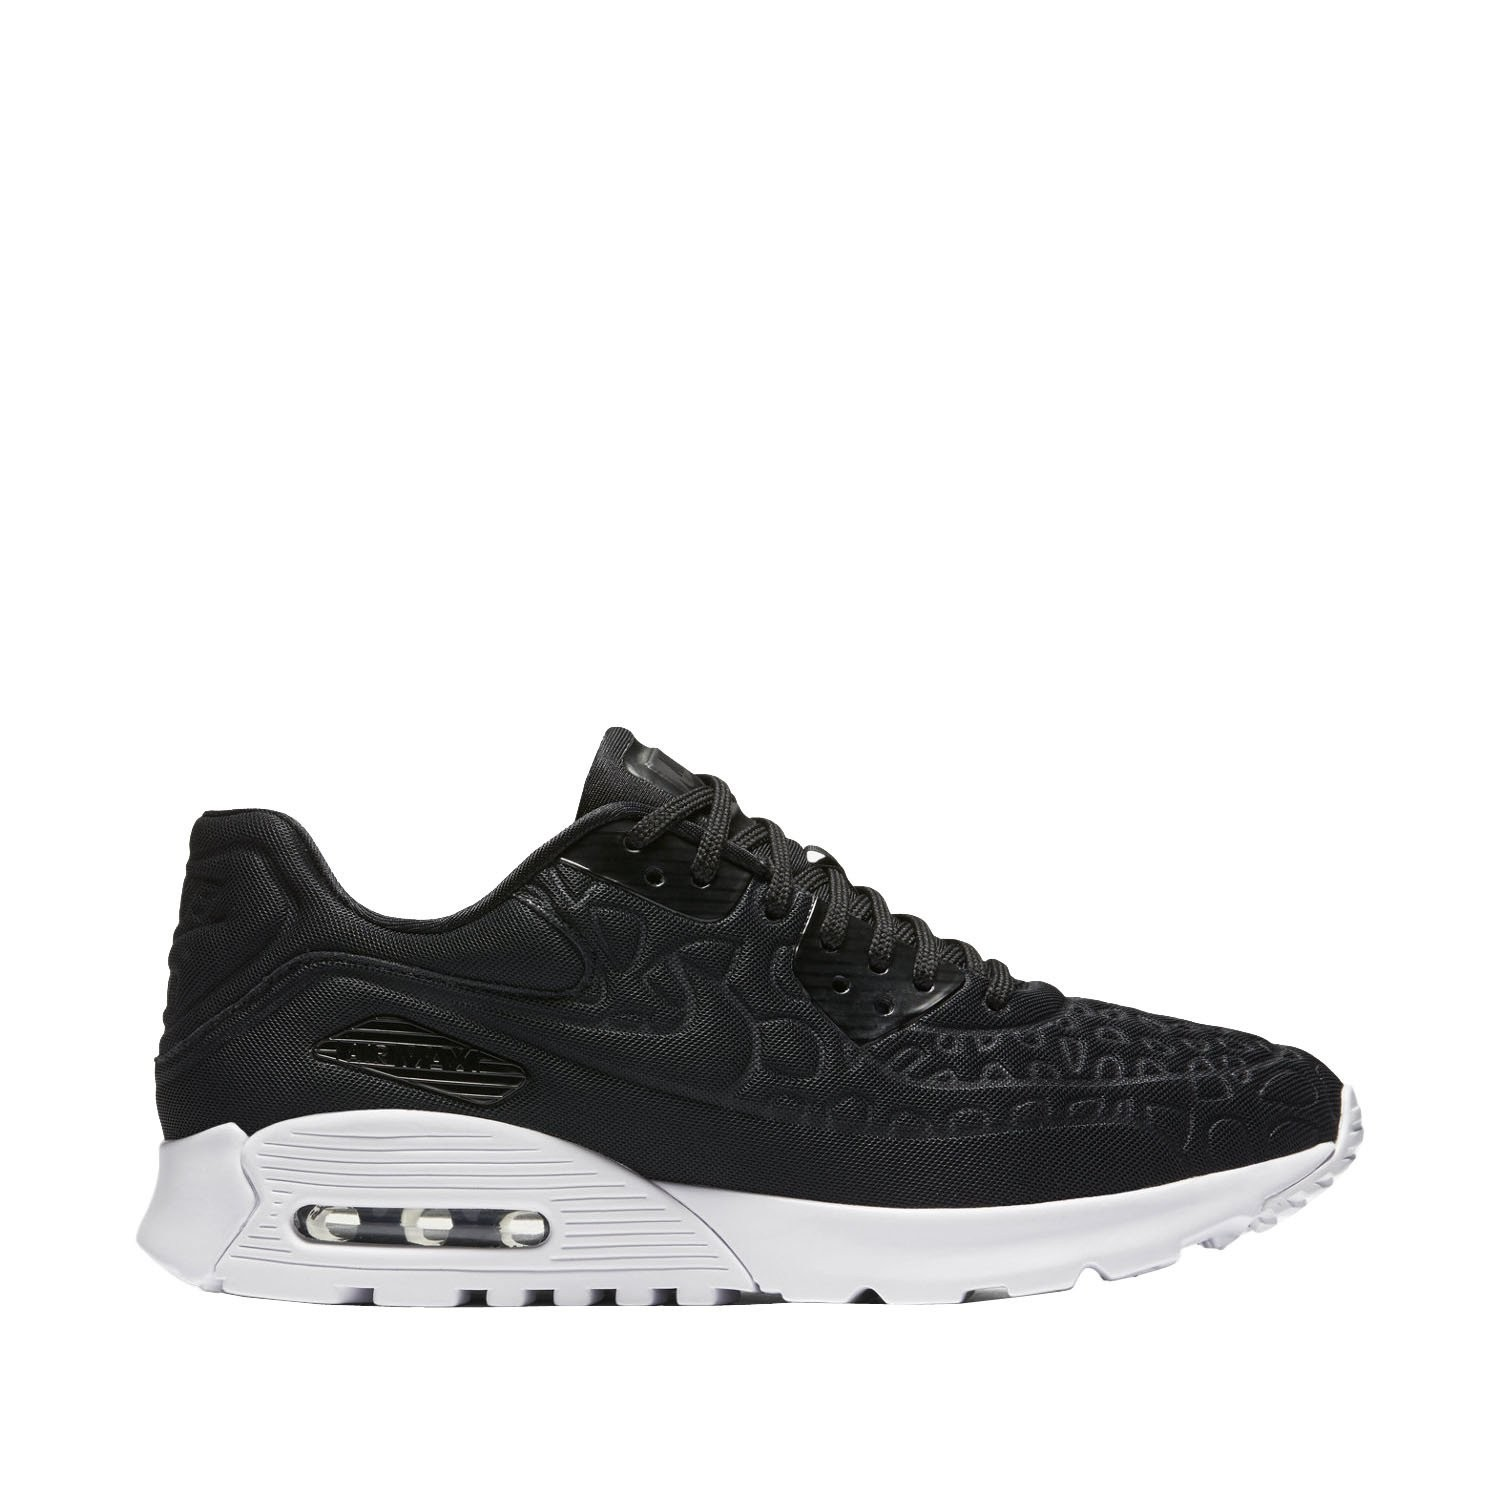 844886-001 Nike Dames Air Max 90 Ultra Plush Schoenen - Zwart/Wit